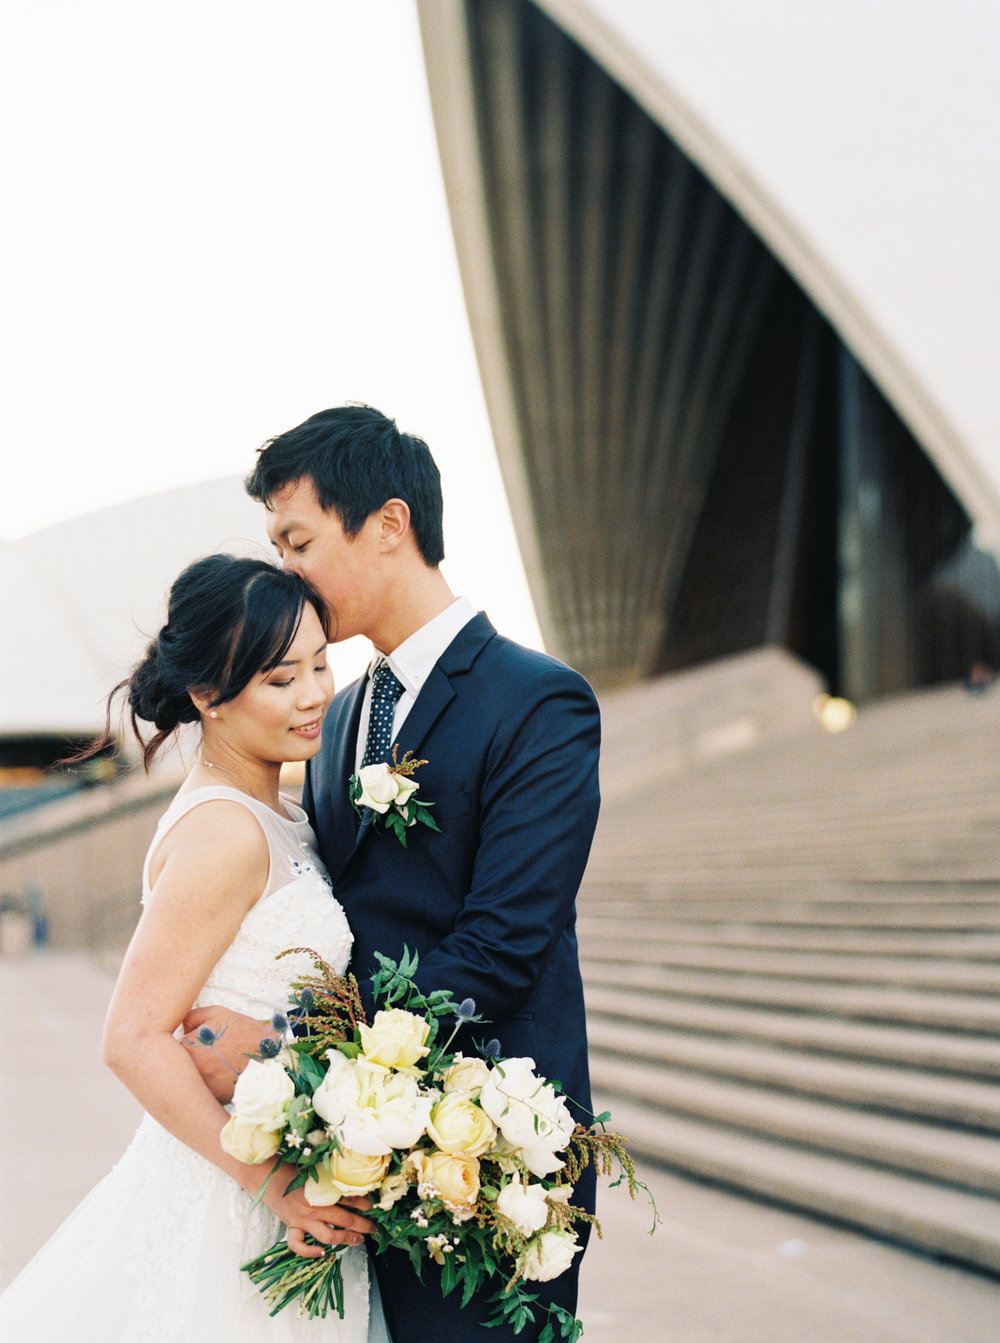 00050- Australia Sydney Wedding Photographer Sheri McMahon.jpg